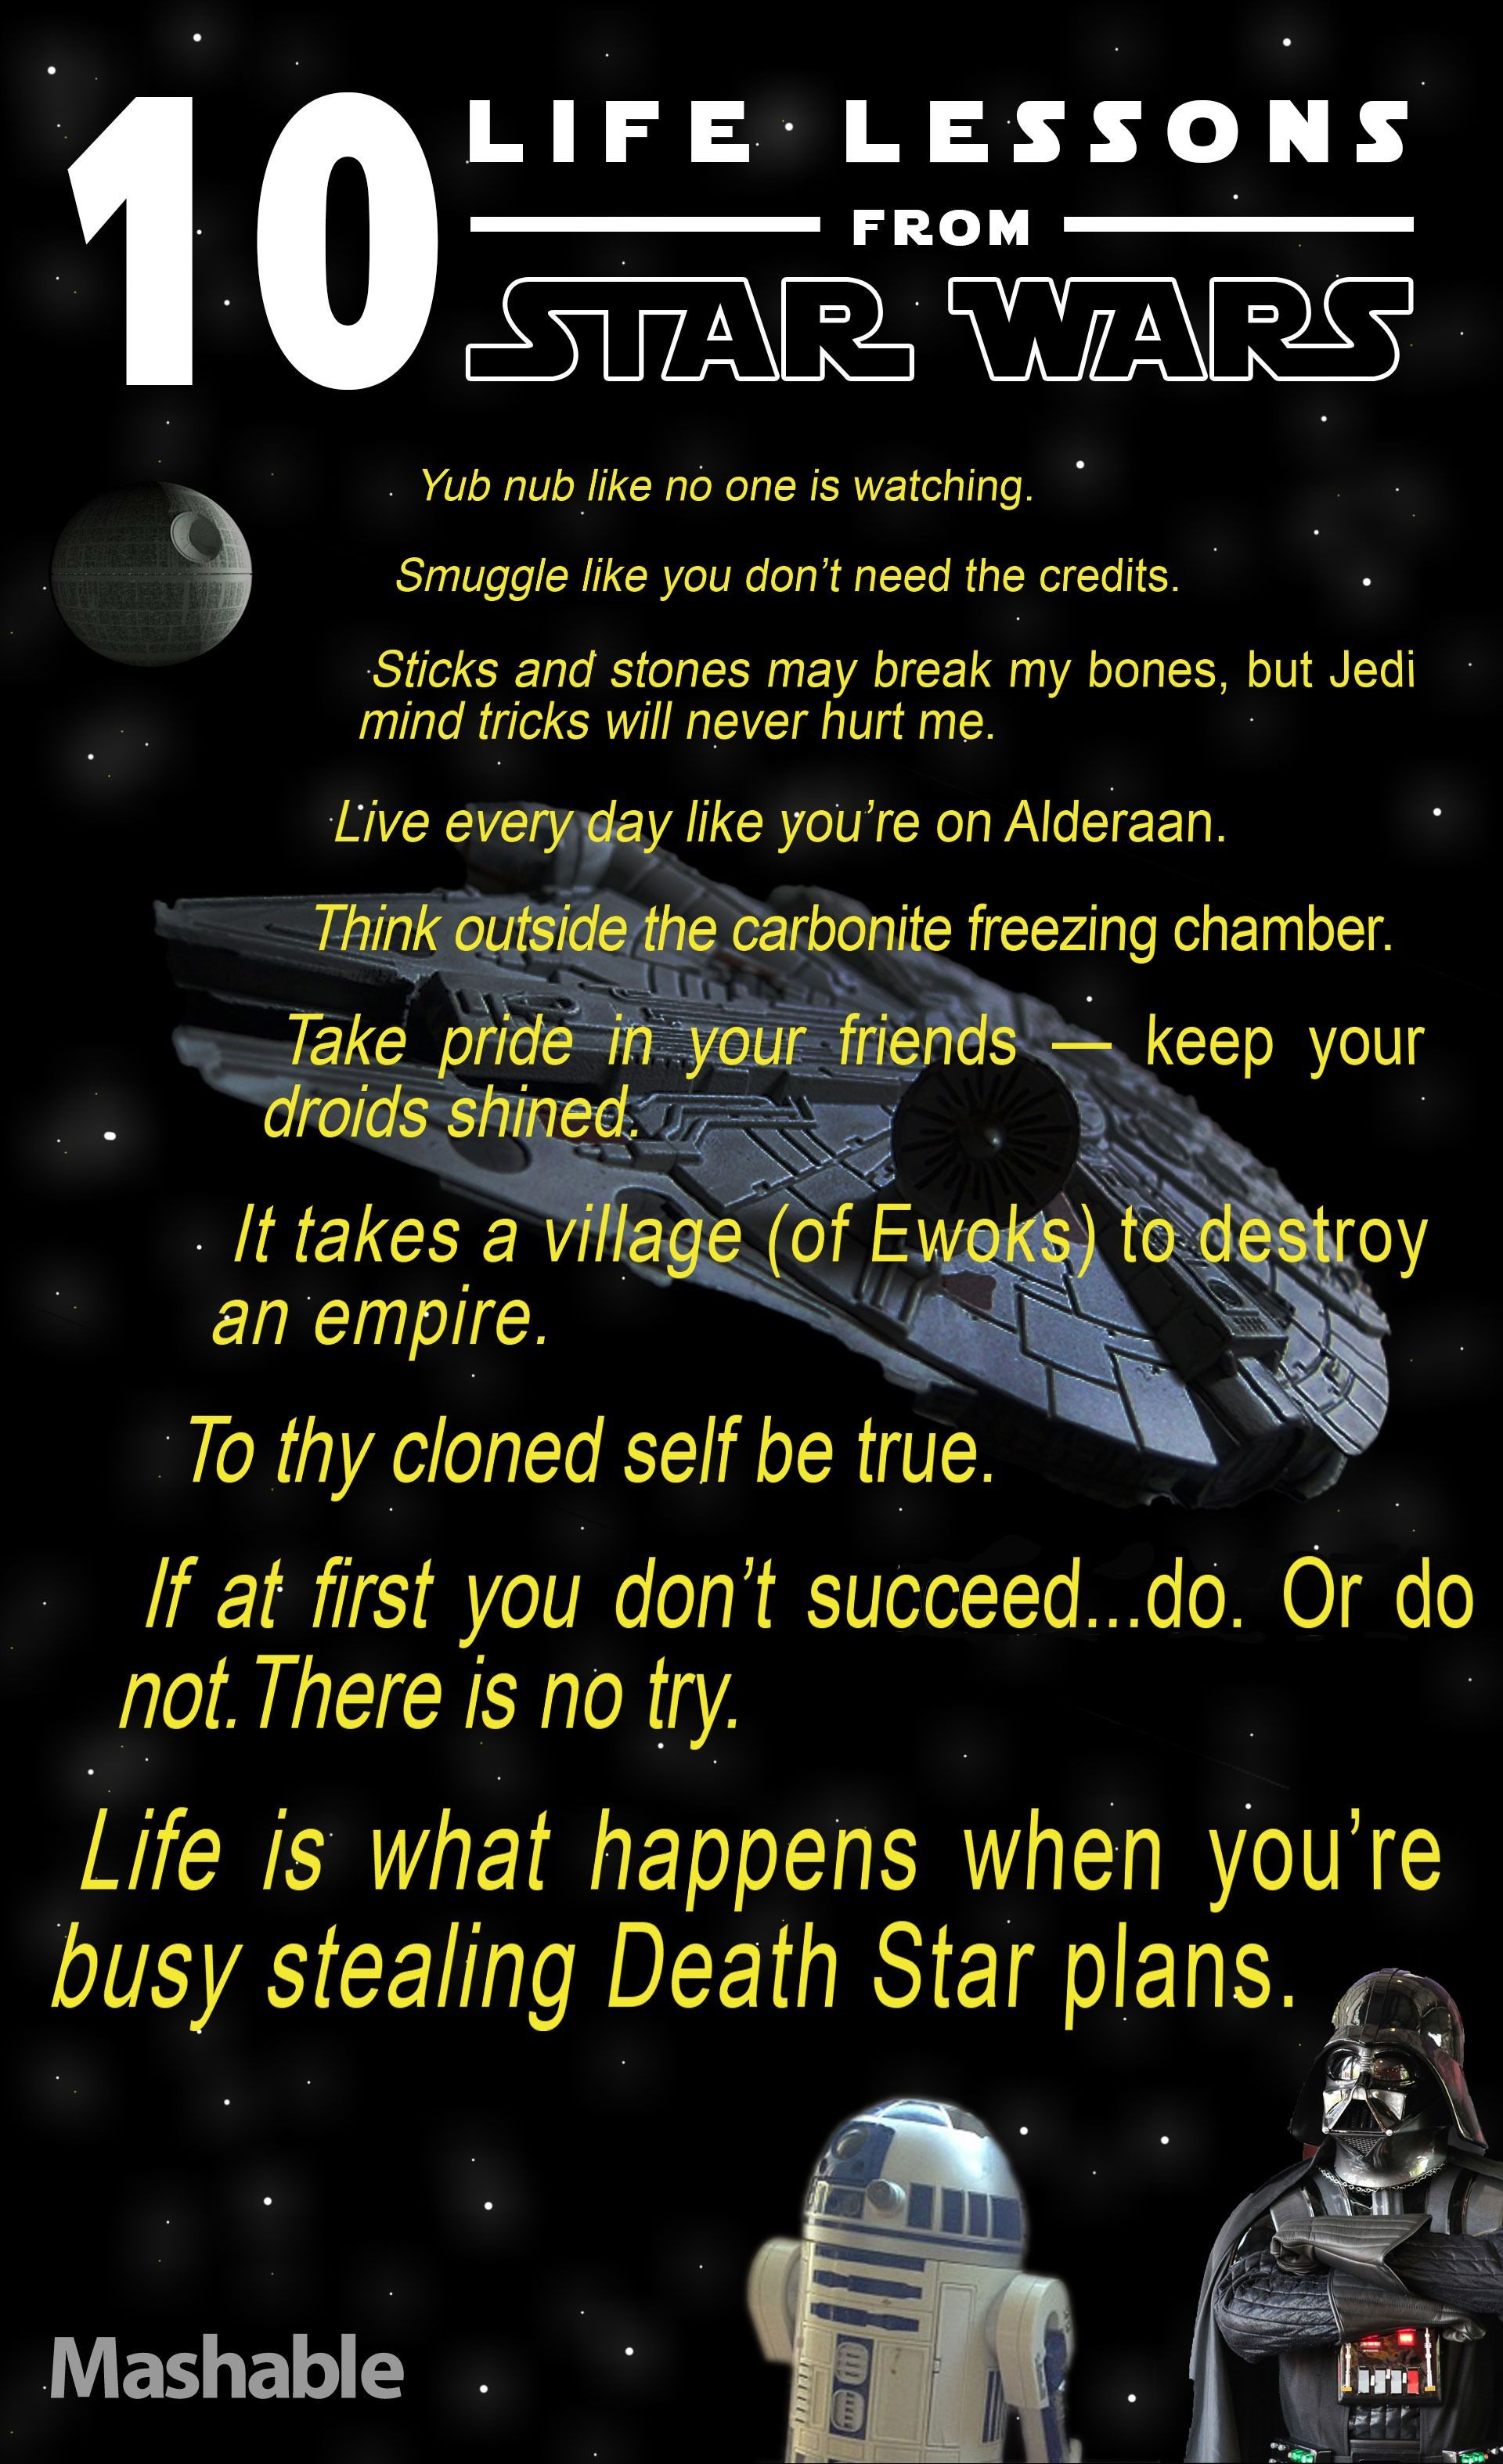 Humorous Quotes About Life Lessons 10 Life Lessons From Star Wars  Life Lessons Learned Life